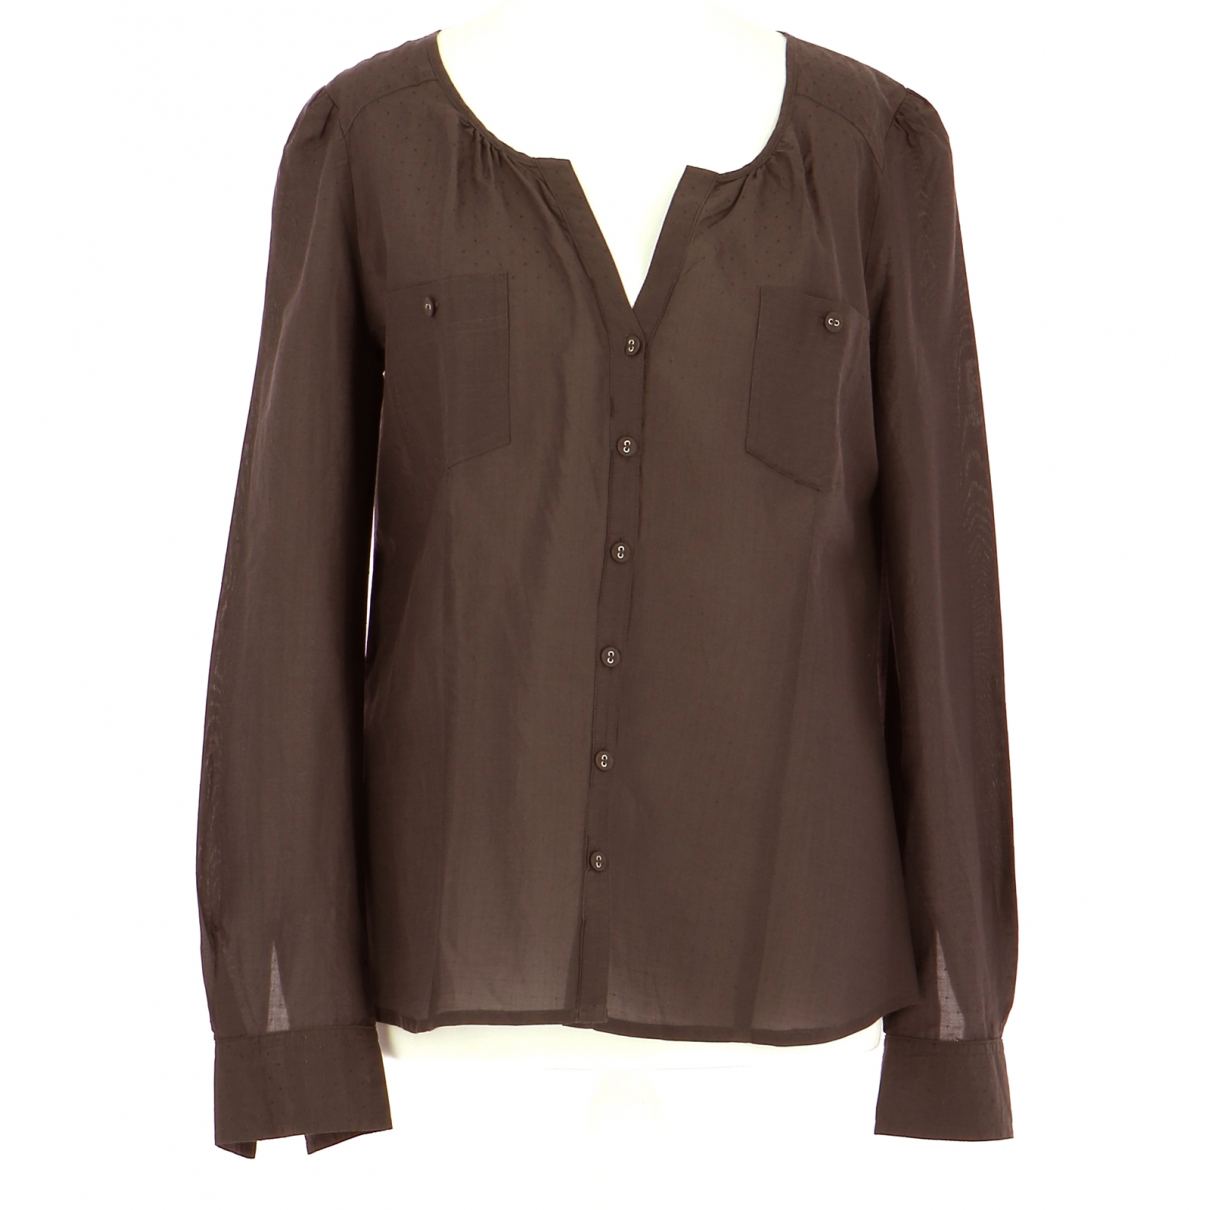 Comptoir Des Cotonniers N Brown Cotton Shirts for Men 38 EU (tour de cou / collar)